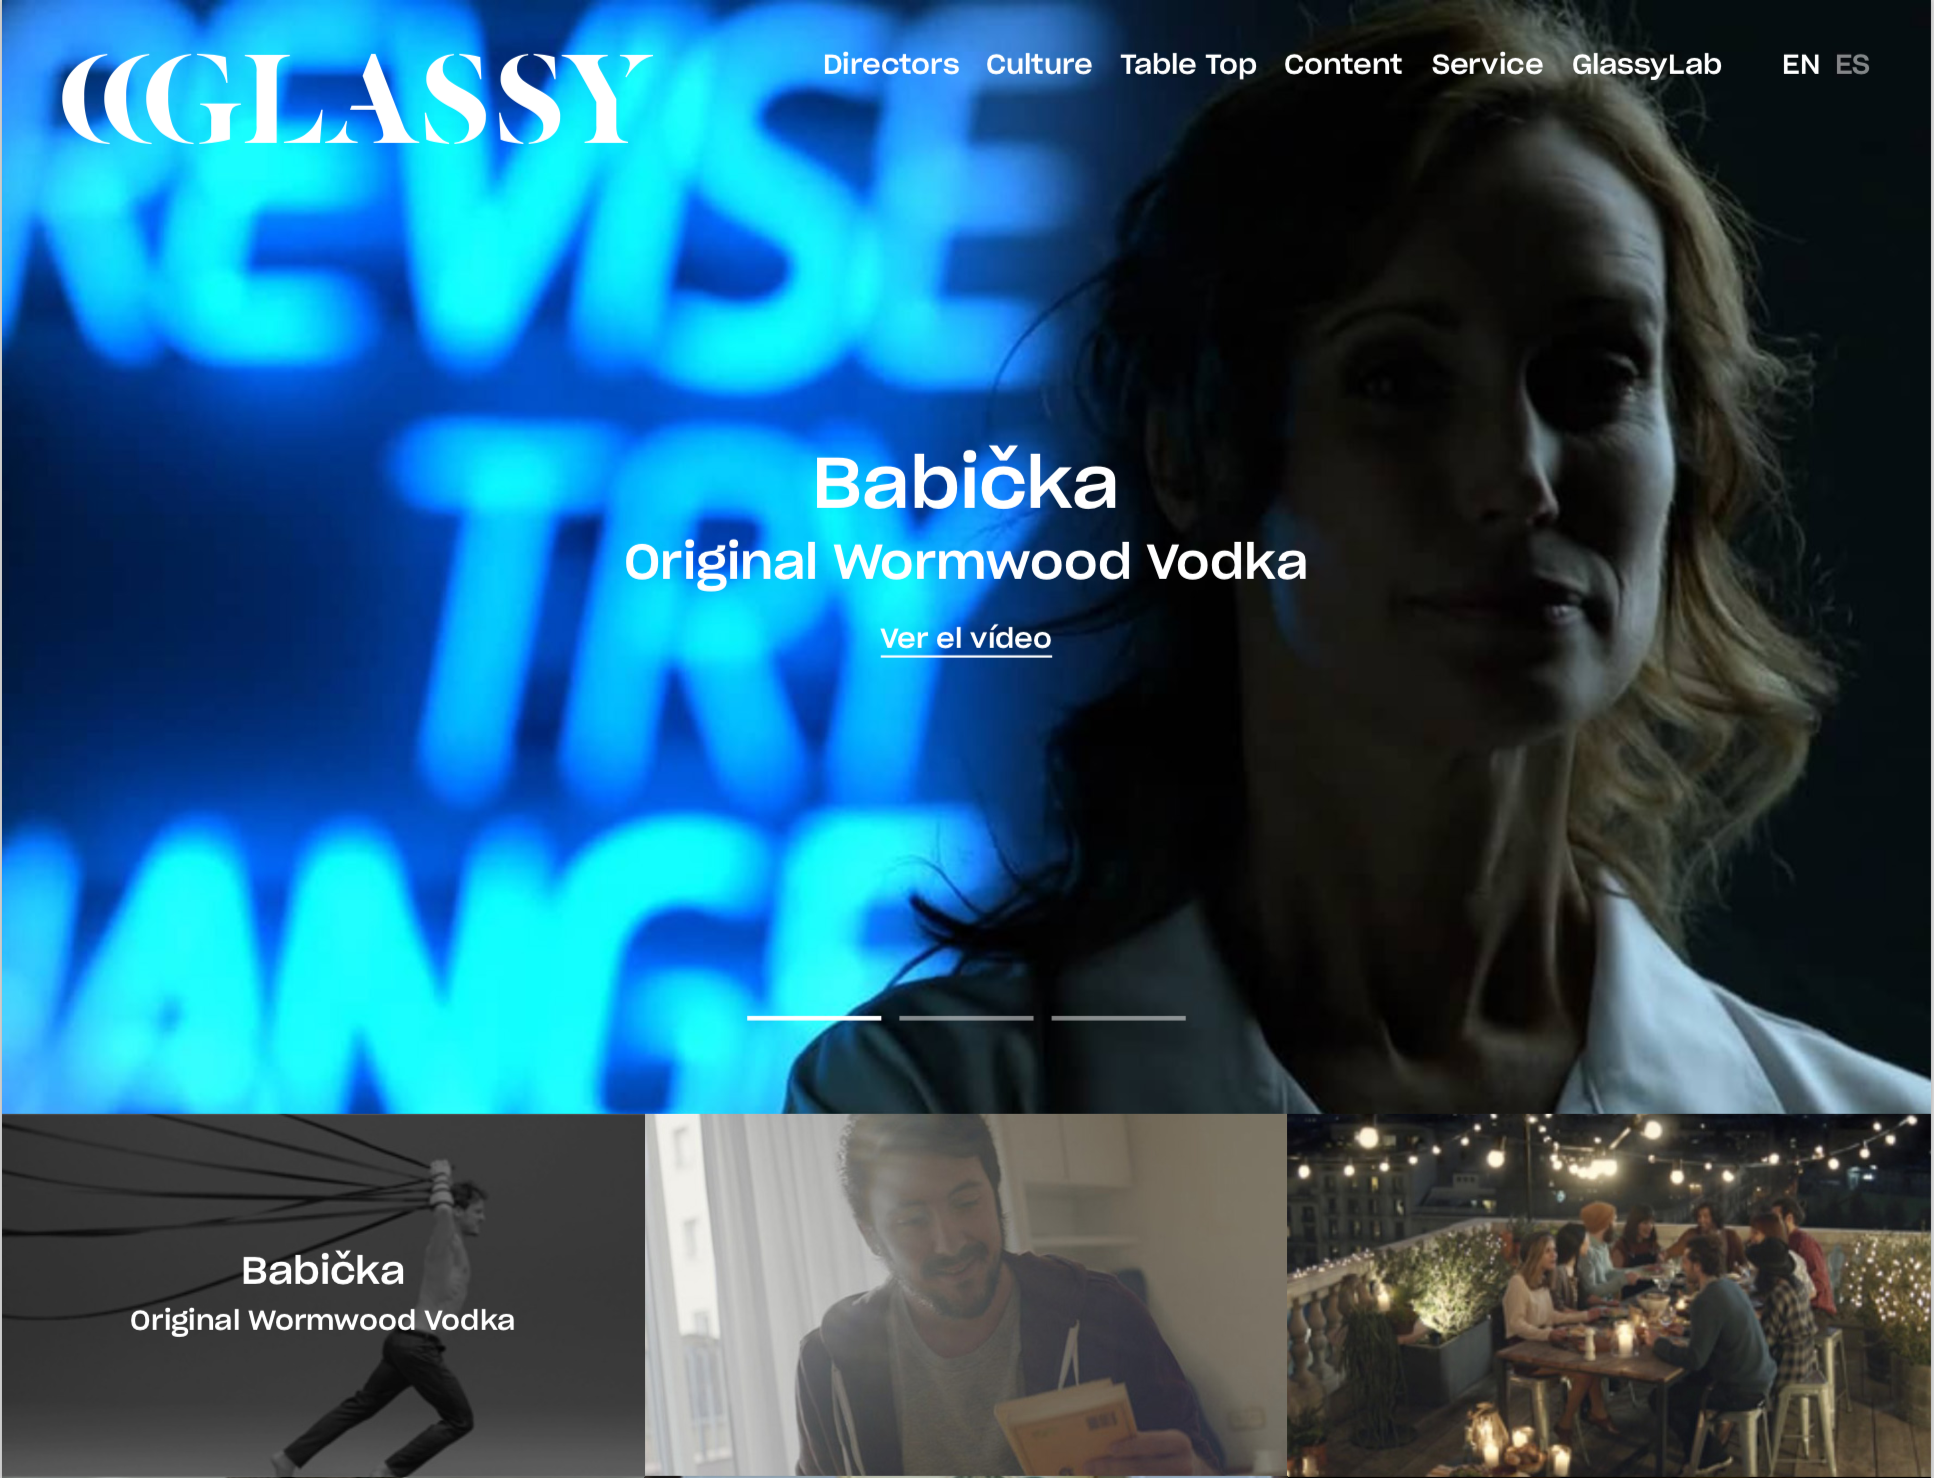 glassyfilms